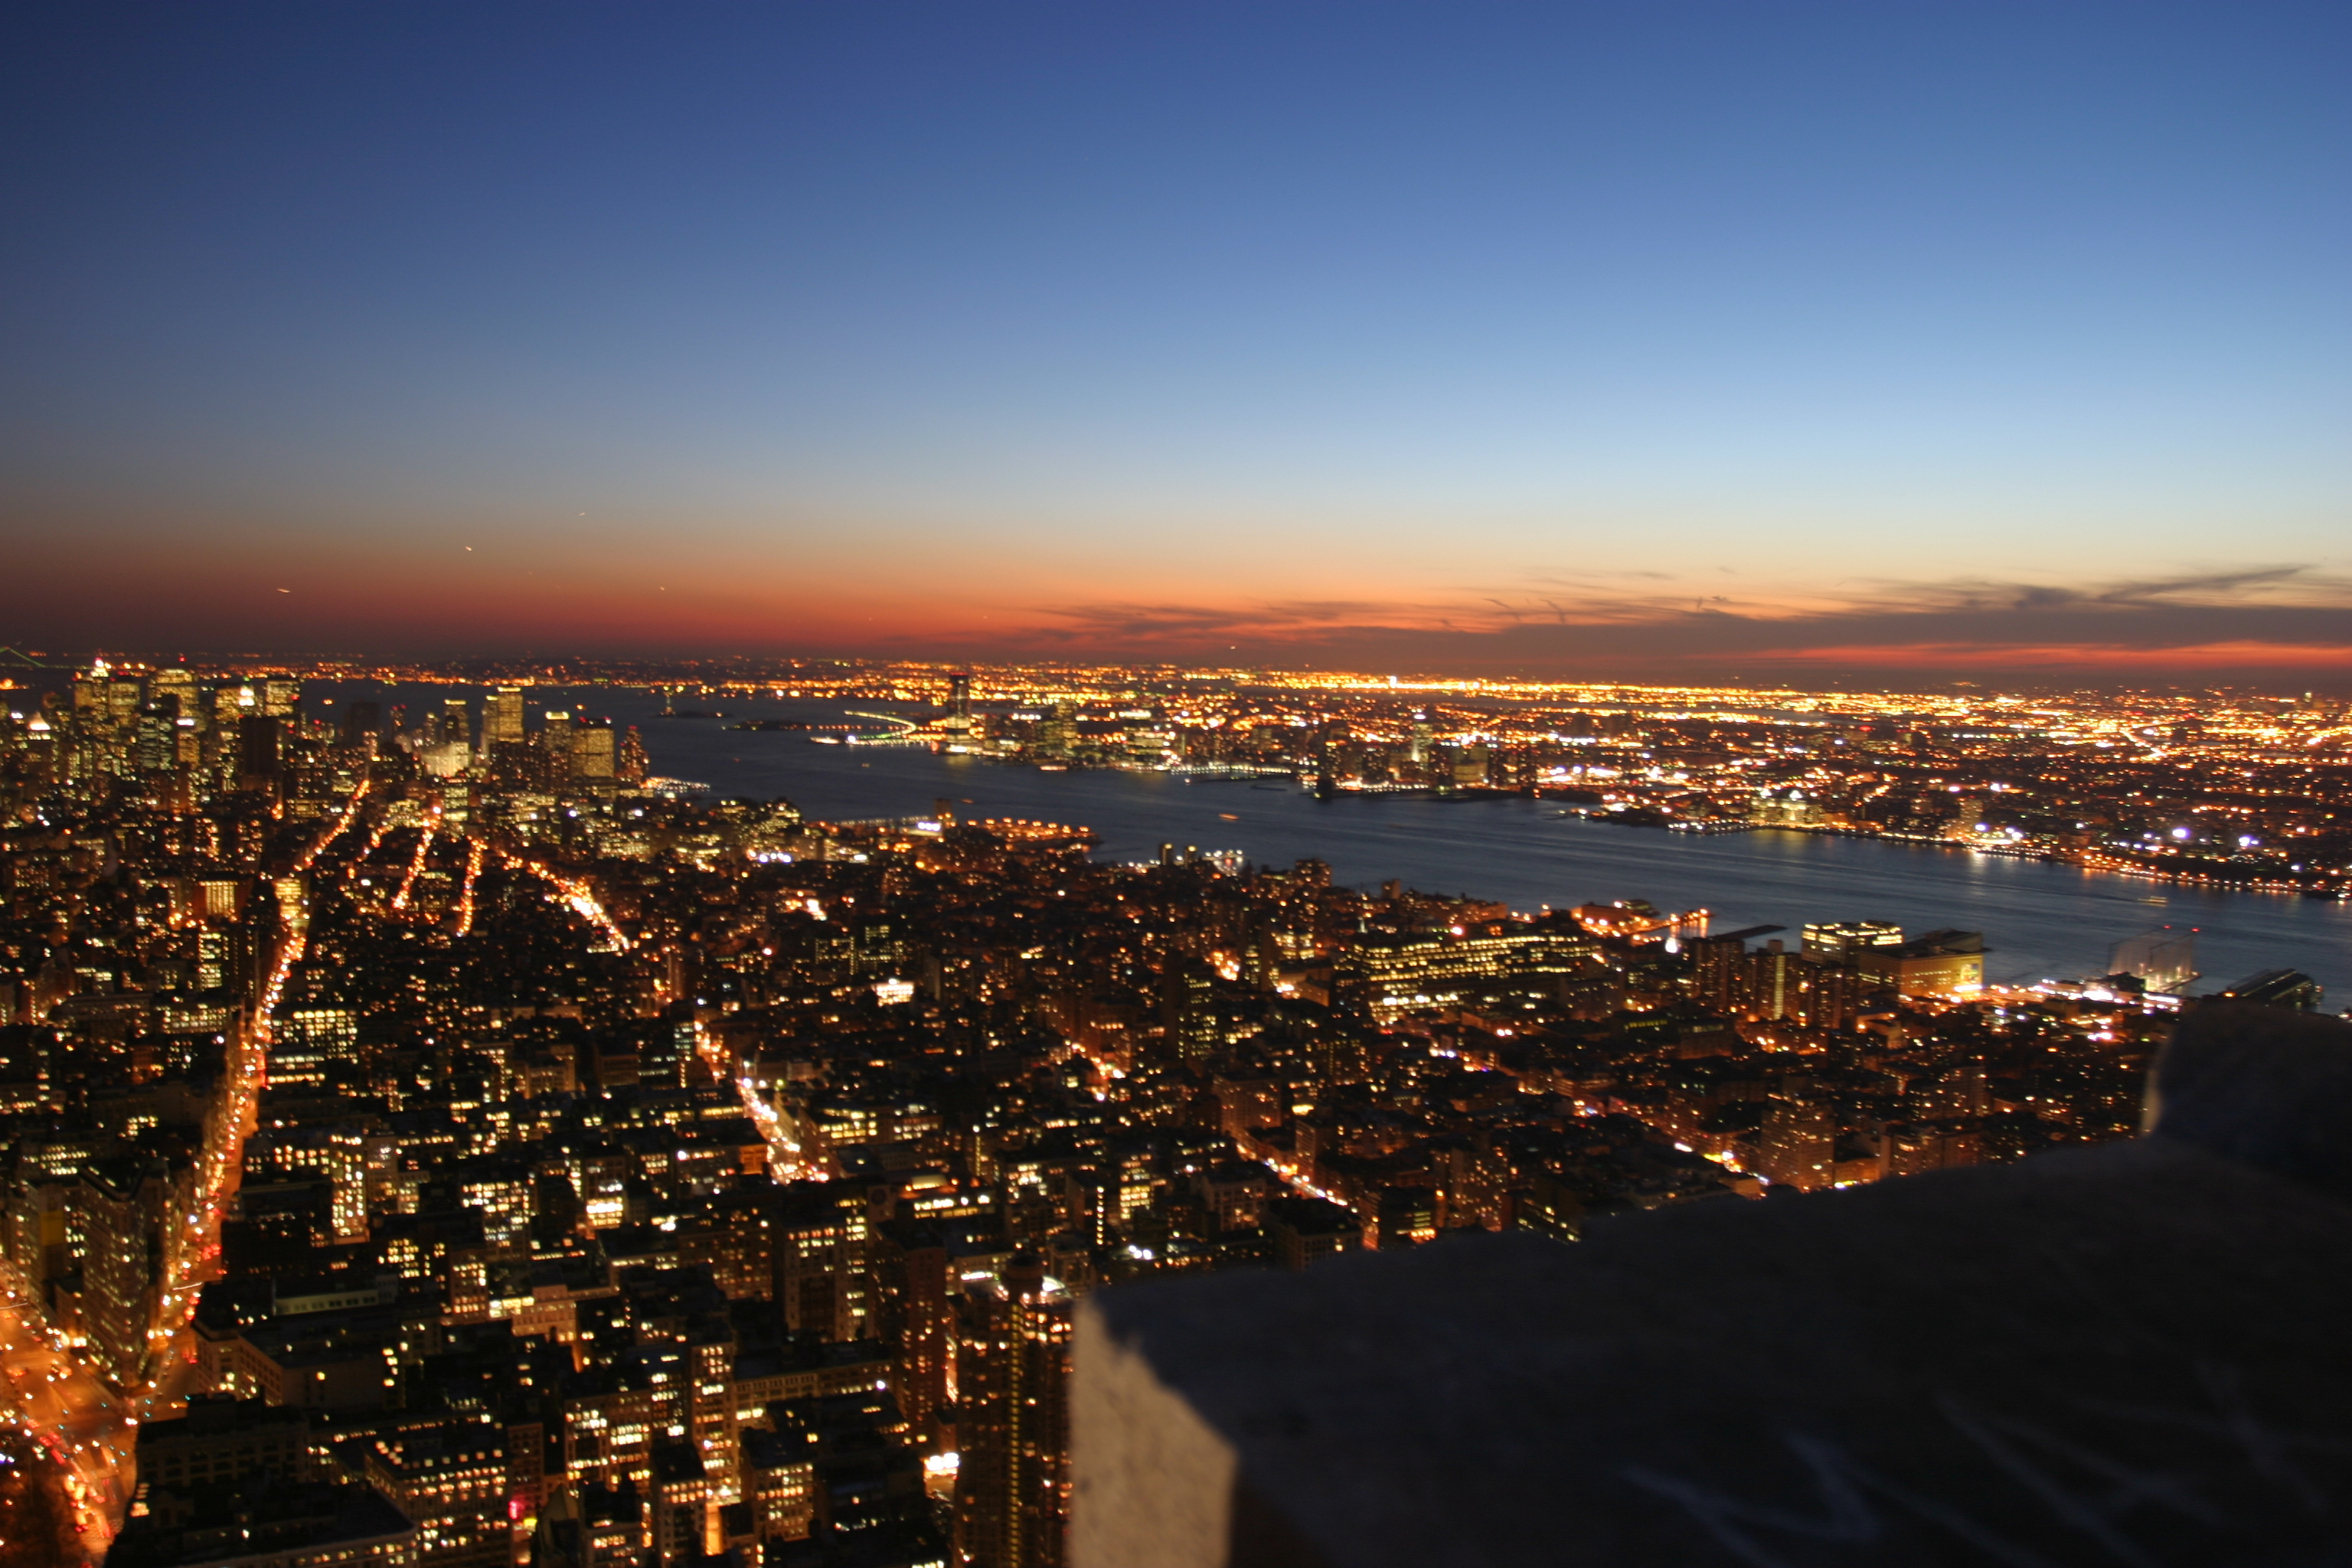 Wallpaper New York by night Grands formats - Hautes resolutions